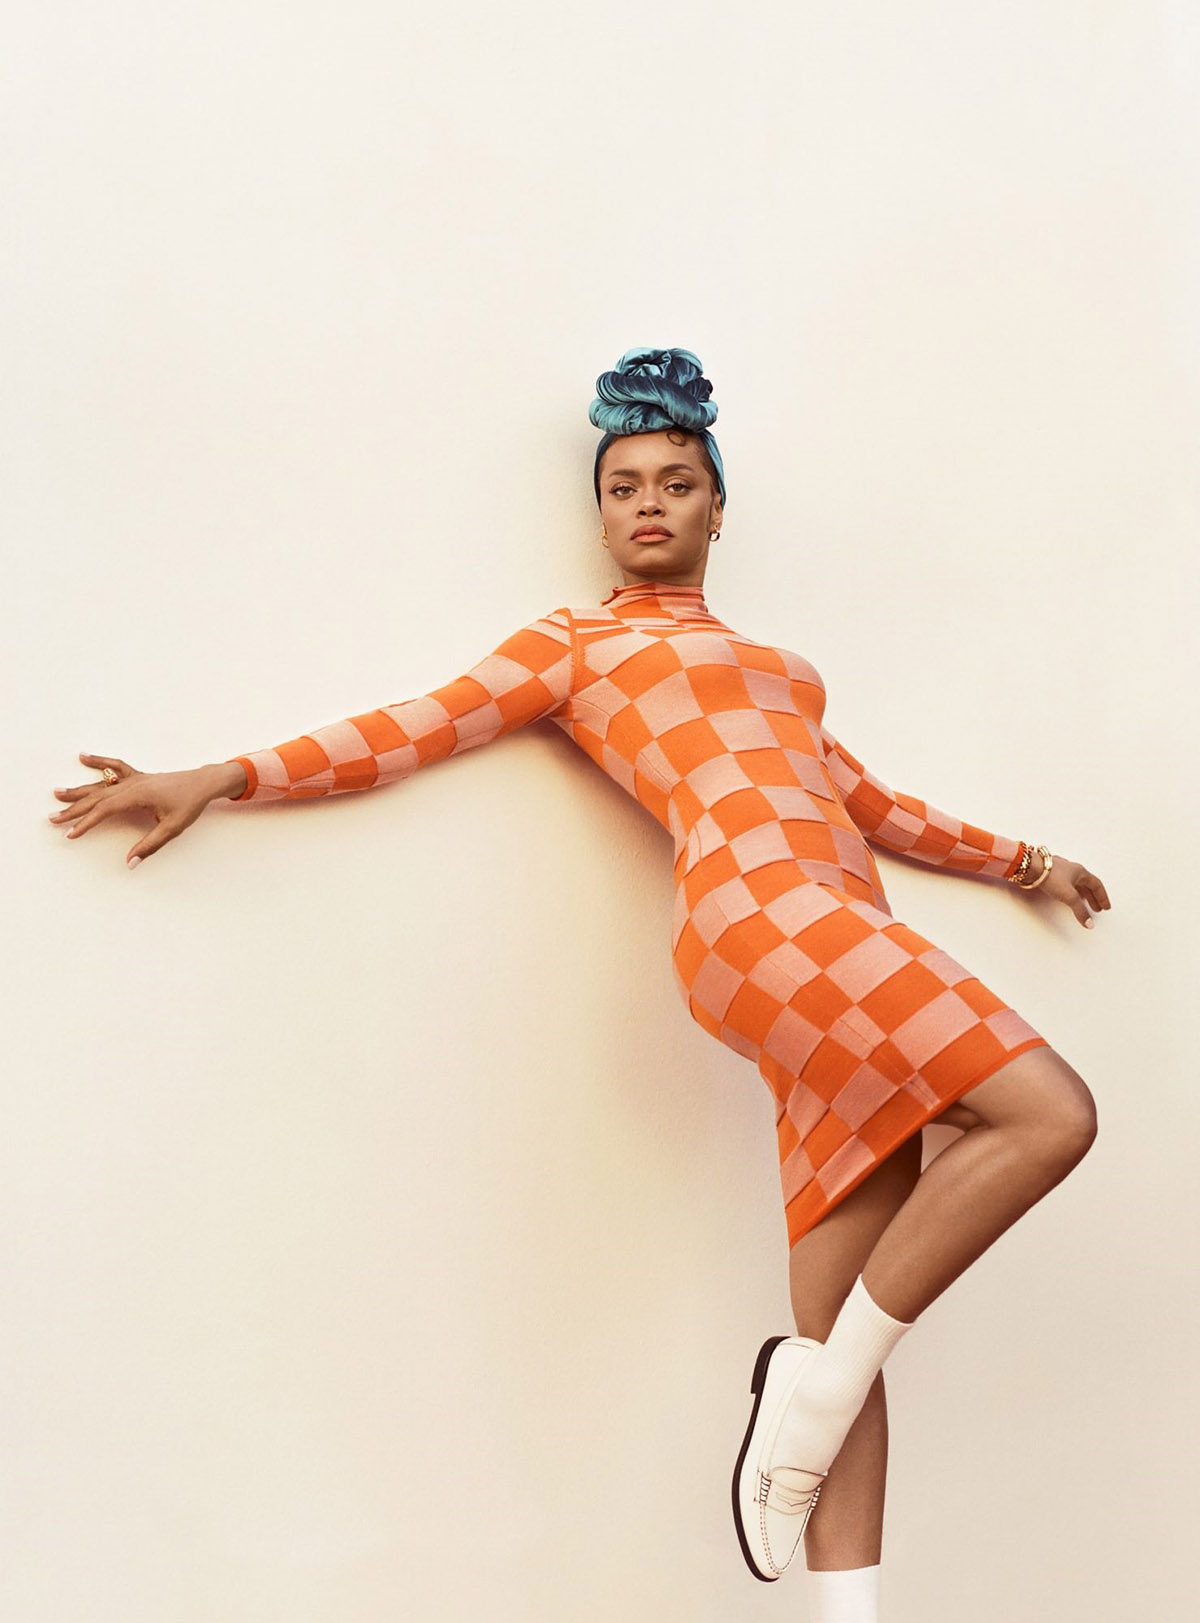 Andra Day covers InStyle US June 2021 by Chrisean Rose